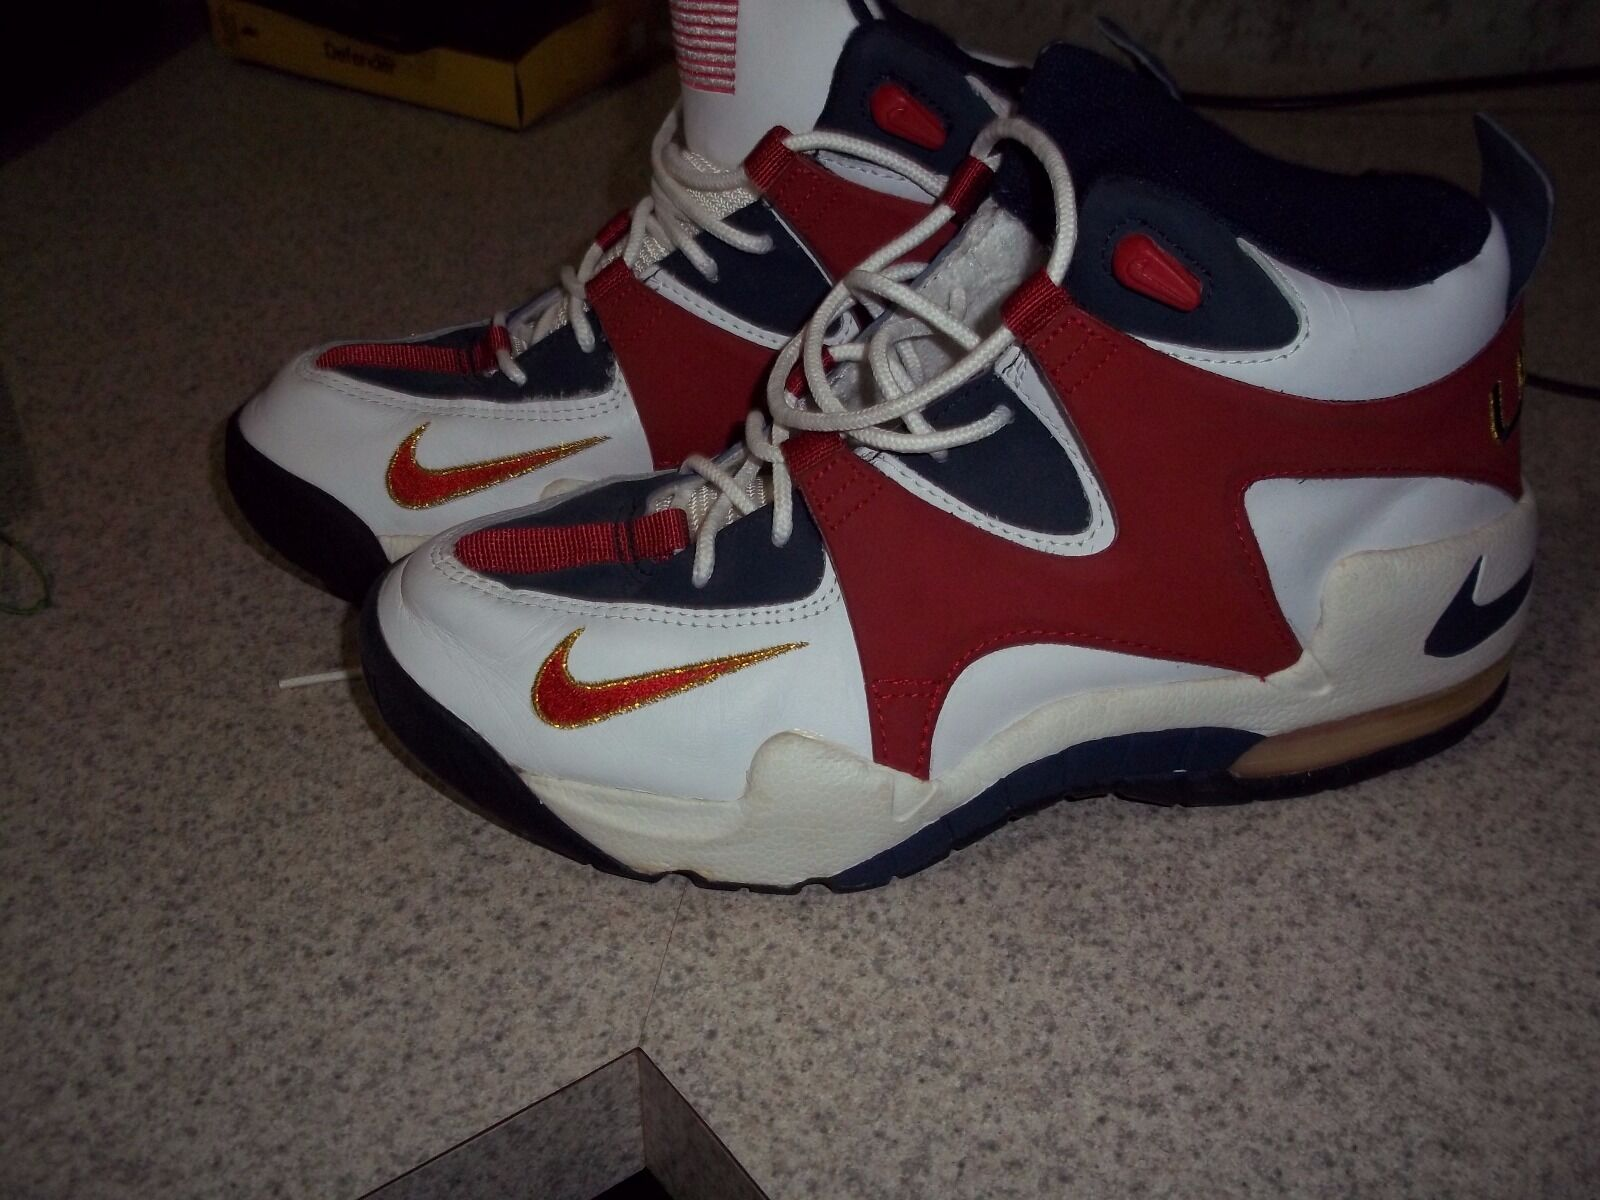 Extremely rare Nike Air Rupt womens size 10 - 1996 Olympics USA - Great Shape